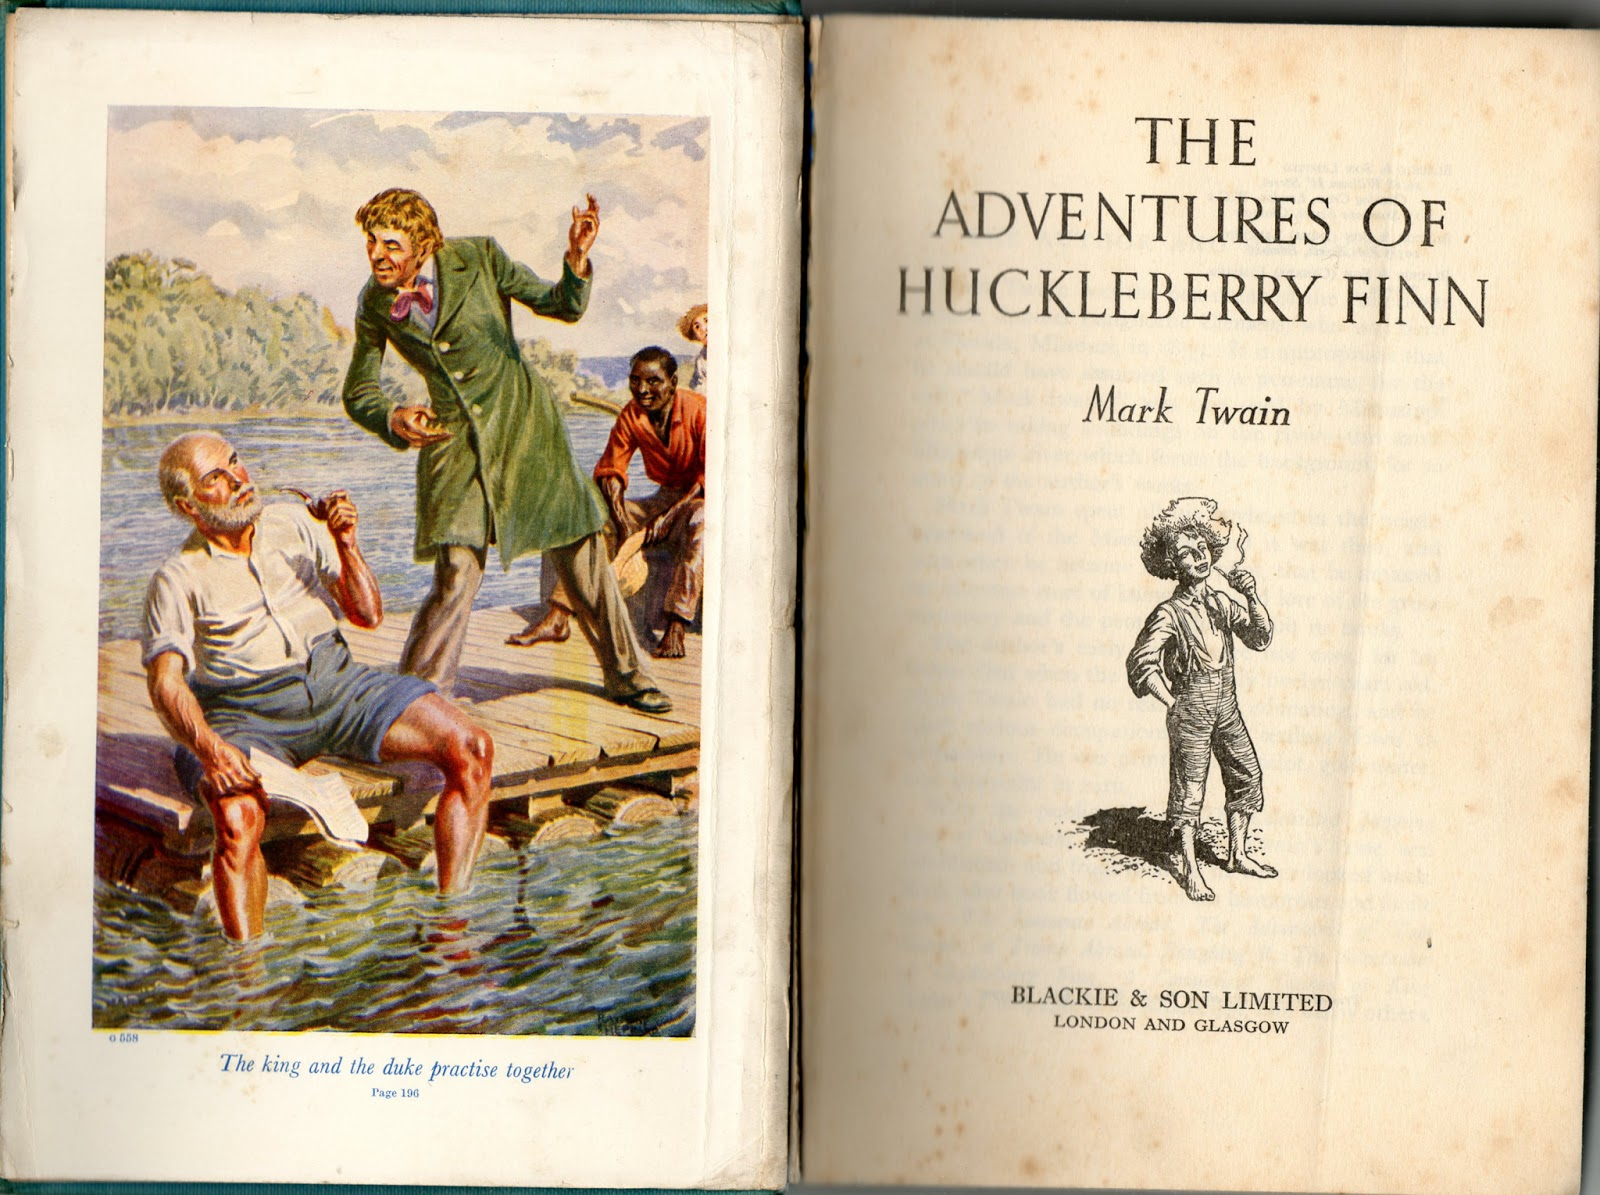 an analysis of the different personalities of huckleberry finn and tom sawyer characters made by mar The adventures of huckleberry finn study guide contains major themes, characters, and a full summary and analysis of although huck finn and tom sawyer are.